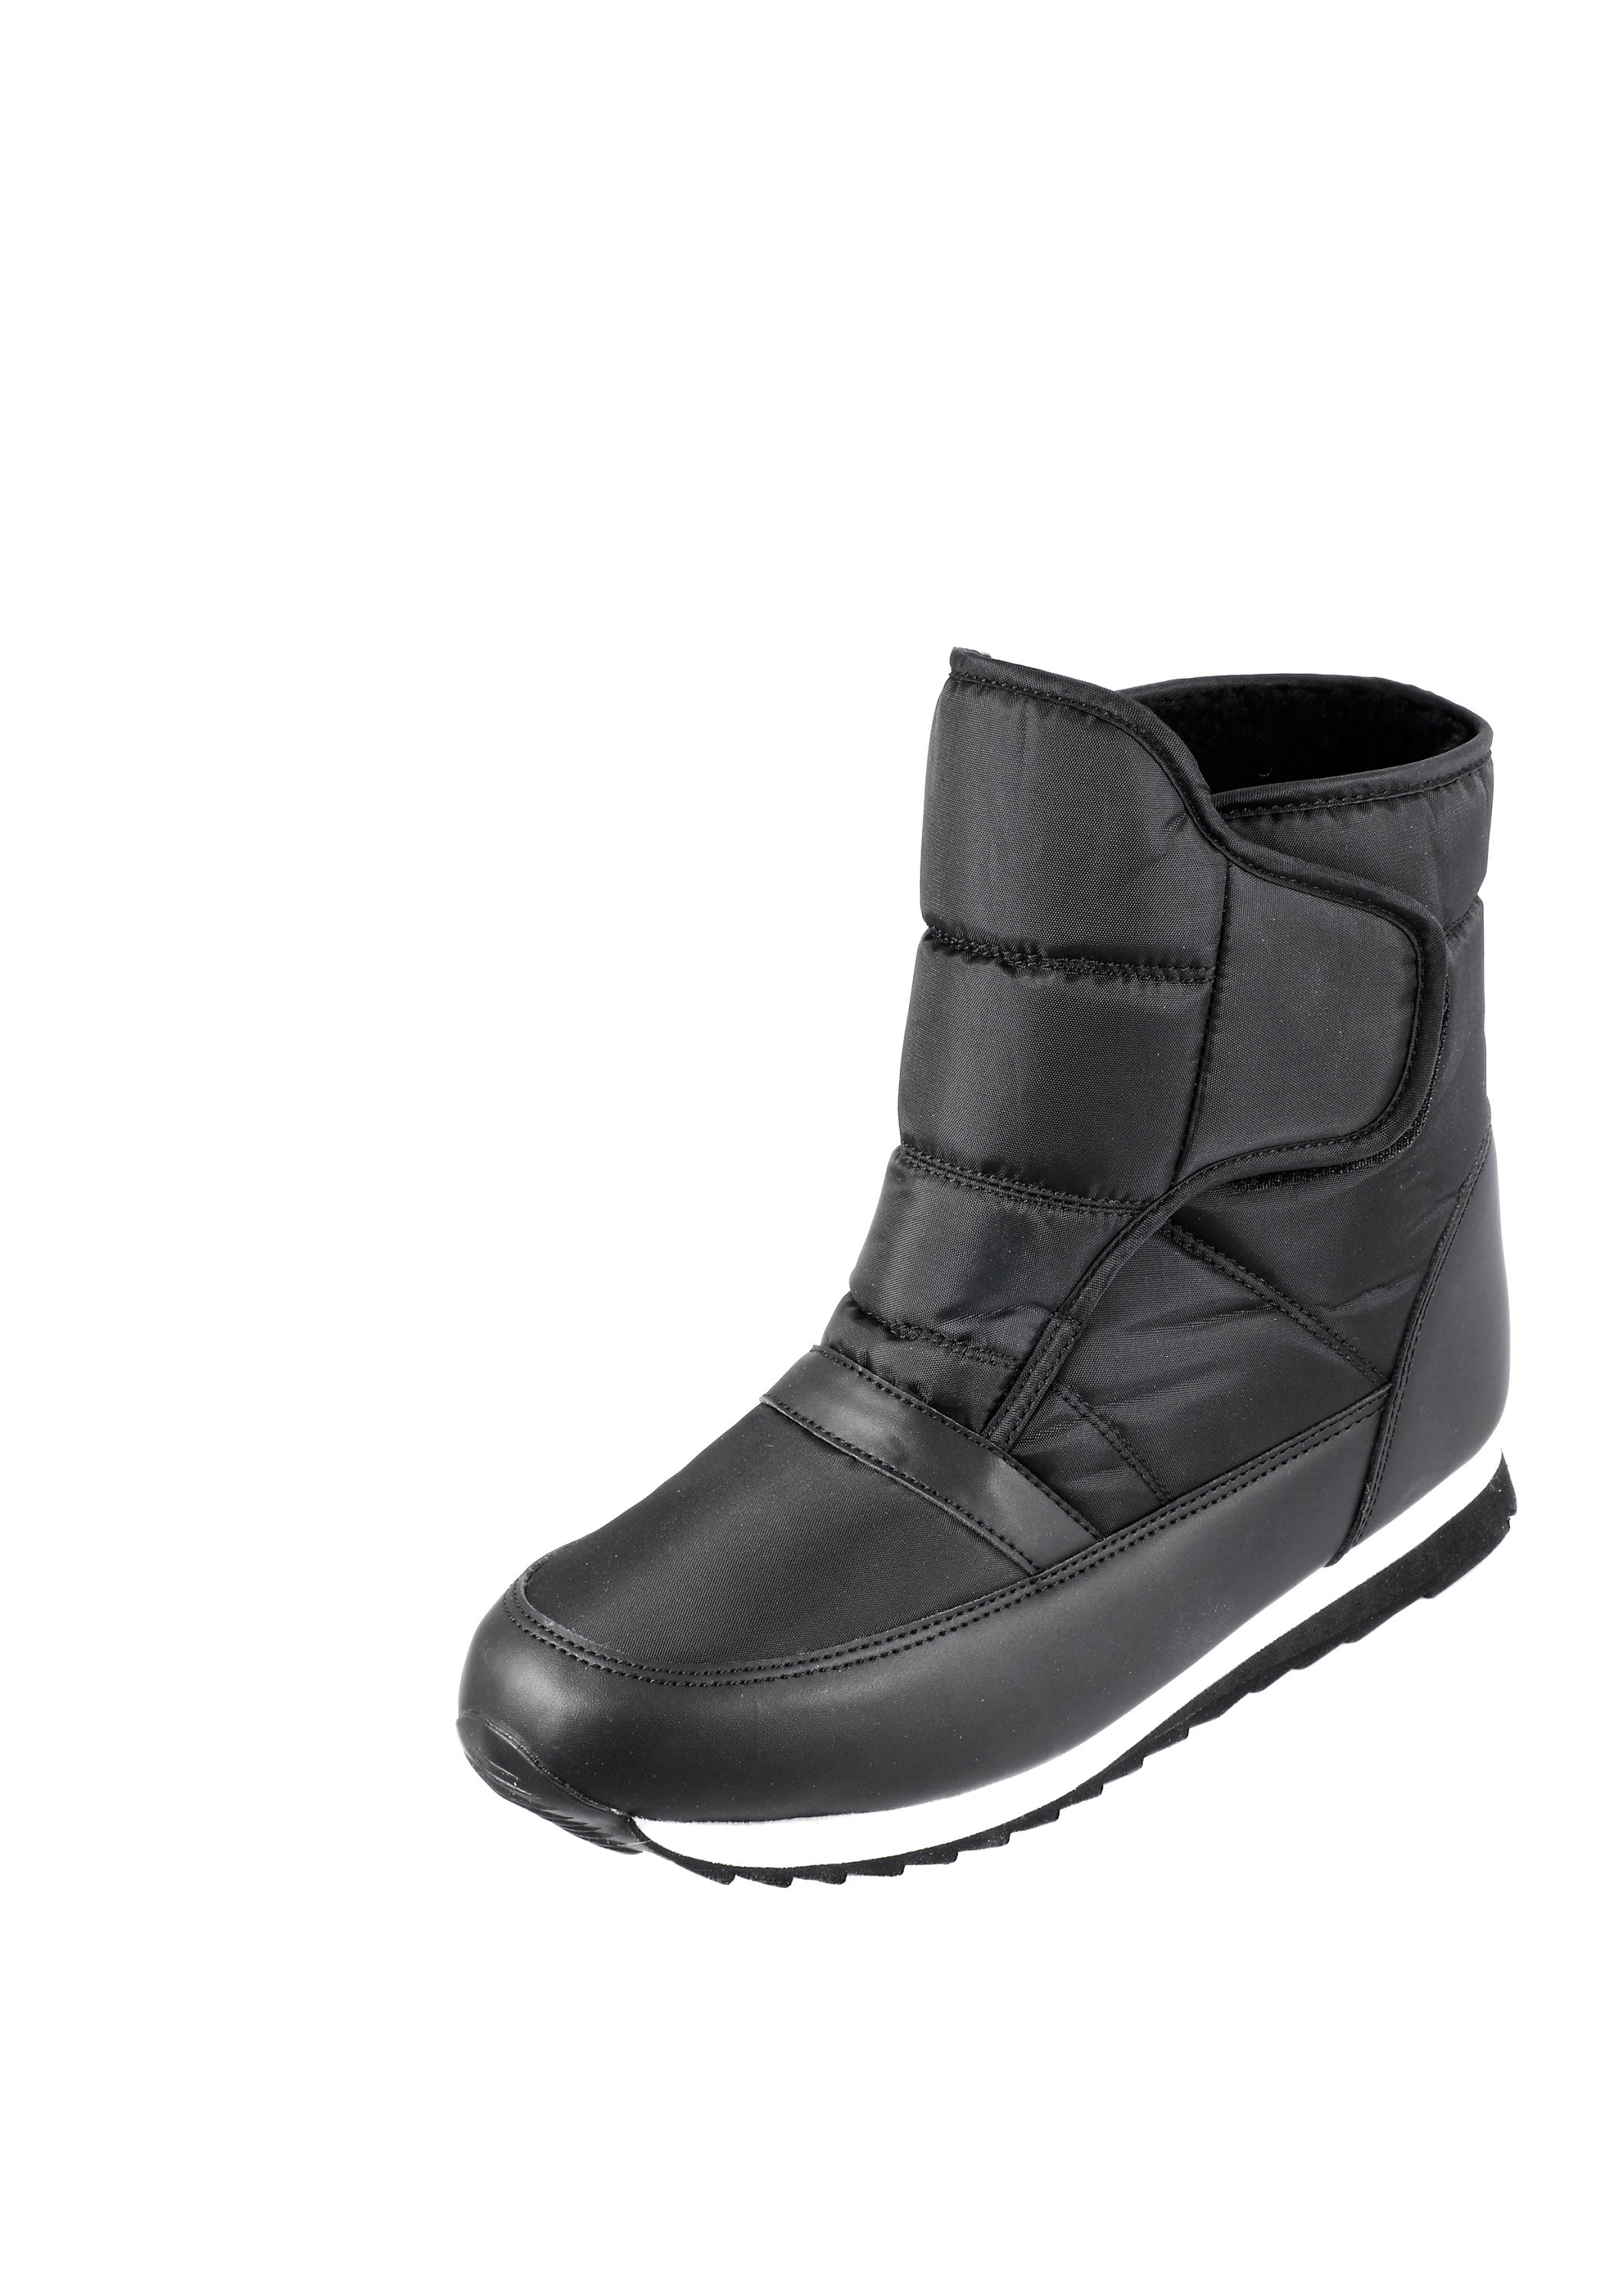 HappyShoes Thermo Winterstiefel, schwarz, Gr. 44 45   Weltbild.at 8aaab7ad74